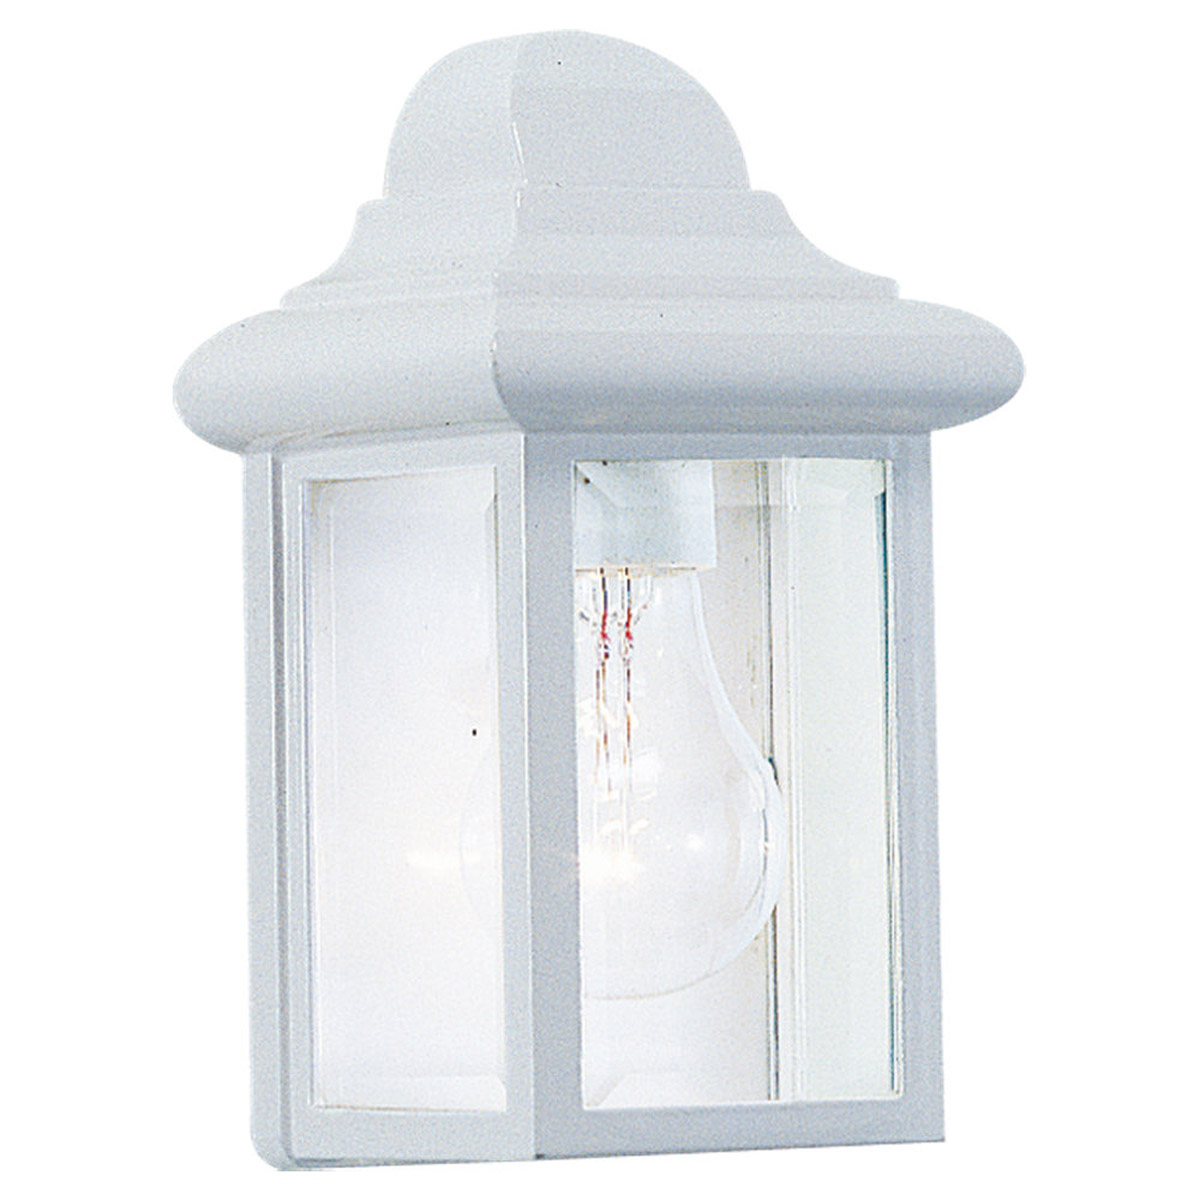 Sea Gull Lighting Mullberry Hill 1 Light Outdoor Wall Lantern in White 8588-15 photo